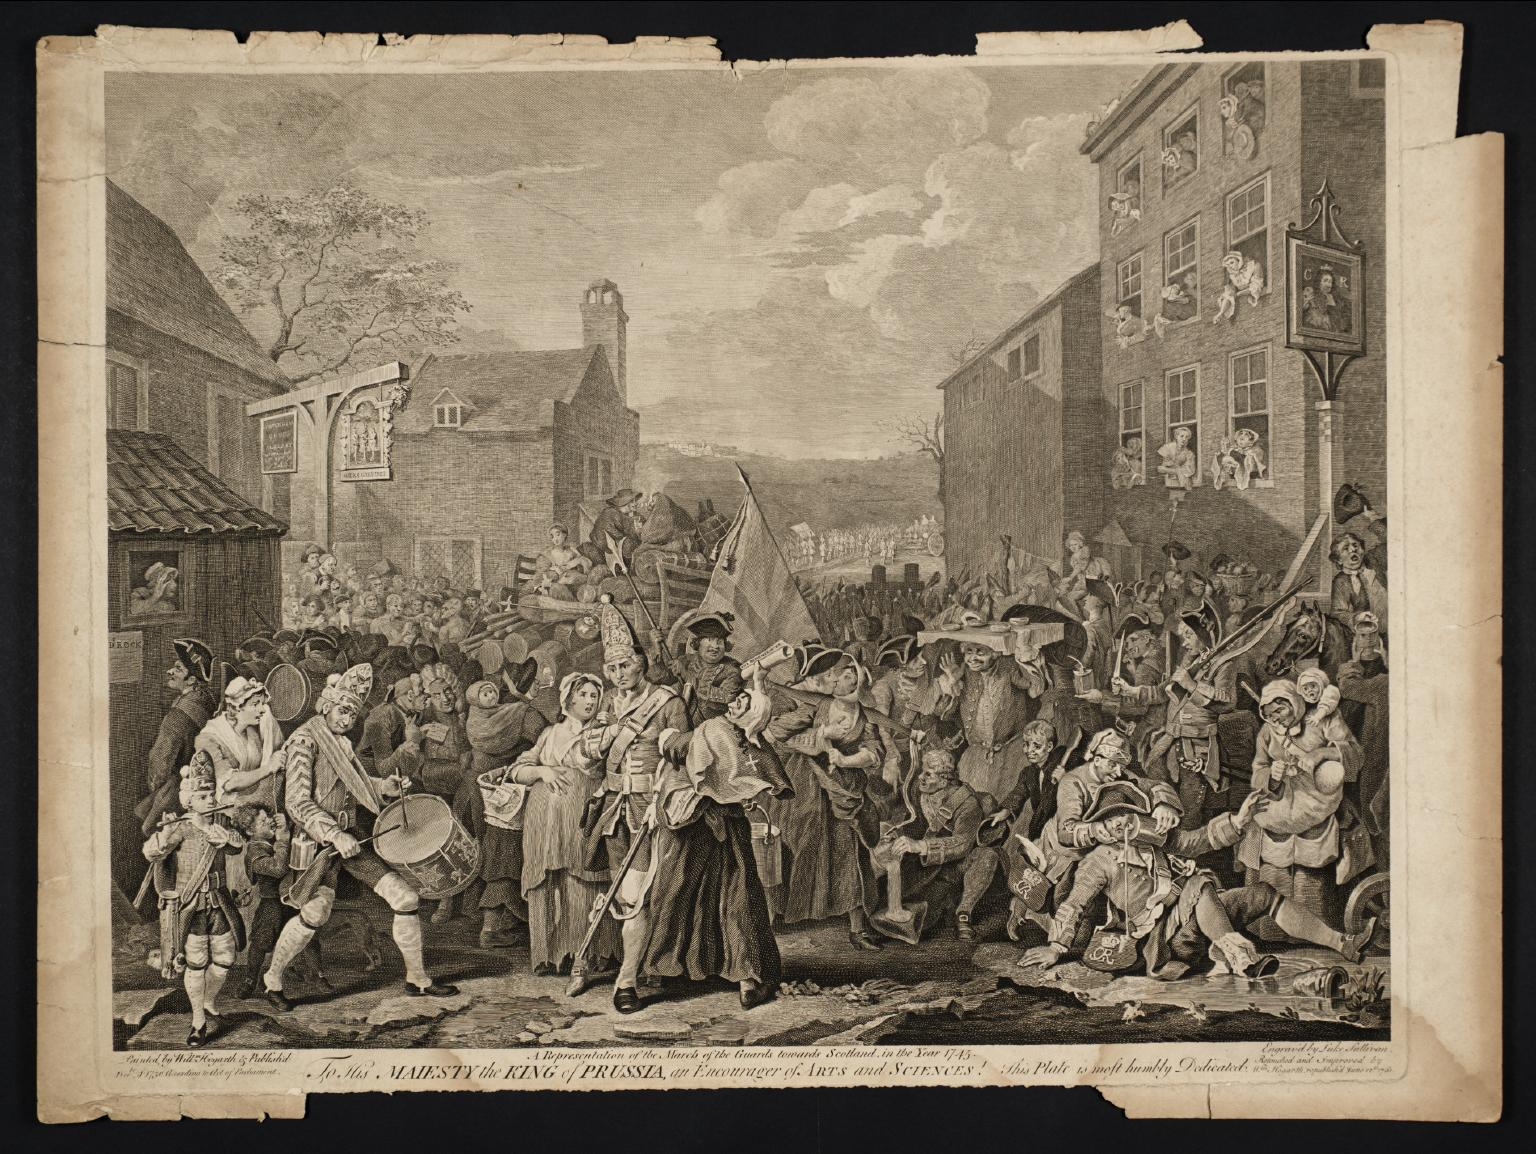 The March to Finchley 1750-61 by William Hogarth and Luke Sullivan 1697-1764, 1705-1771